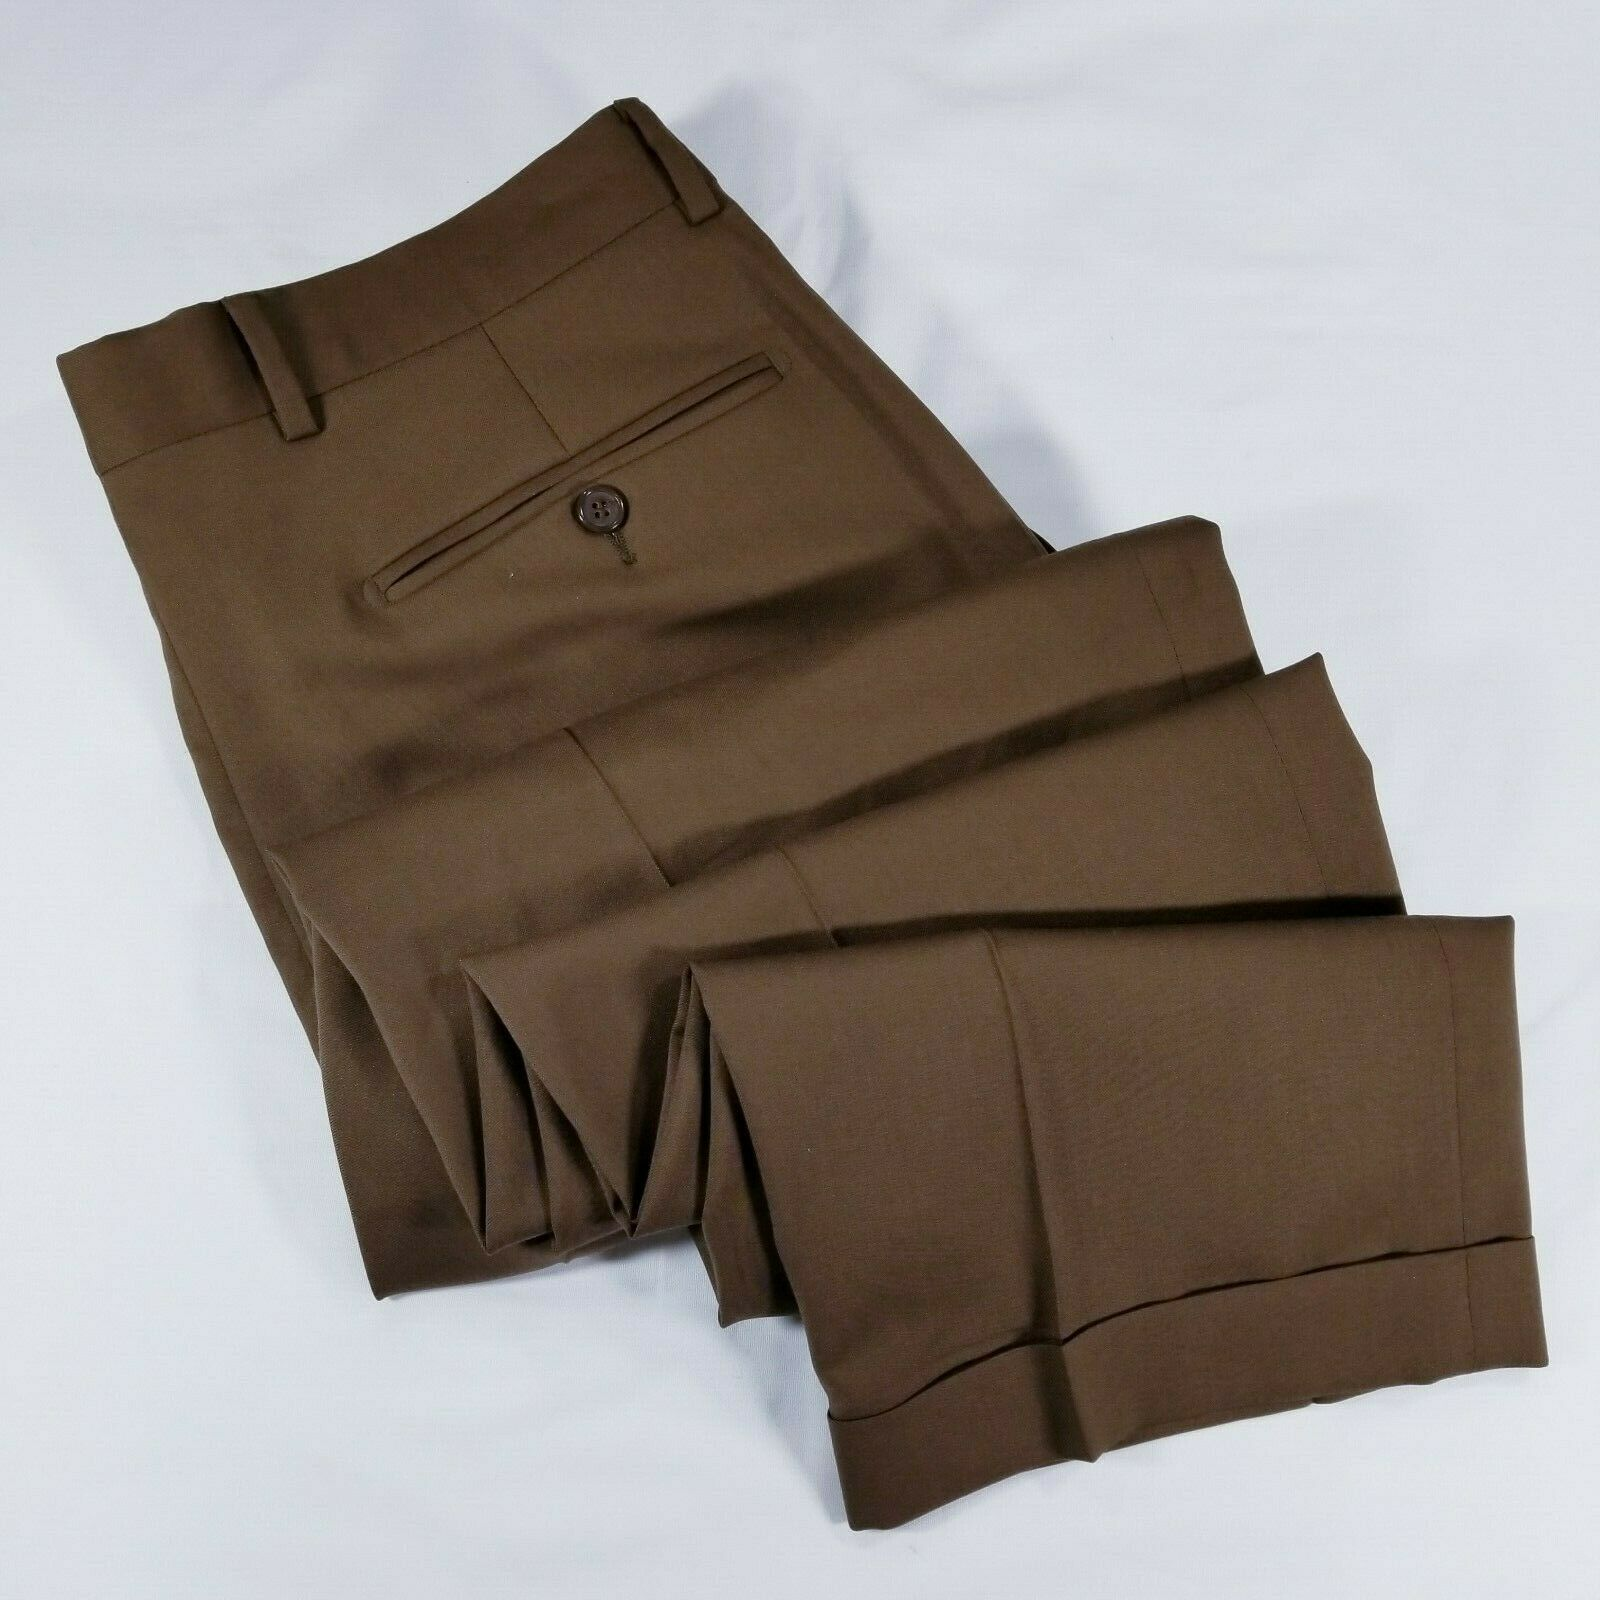 Pazoni Brown tobacco wool dress pants cuffed COMO2 1800 W33 made in ITALY